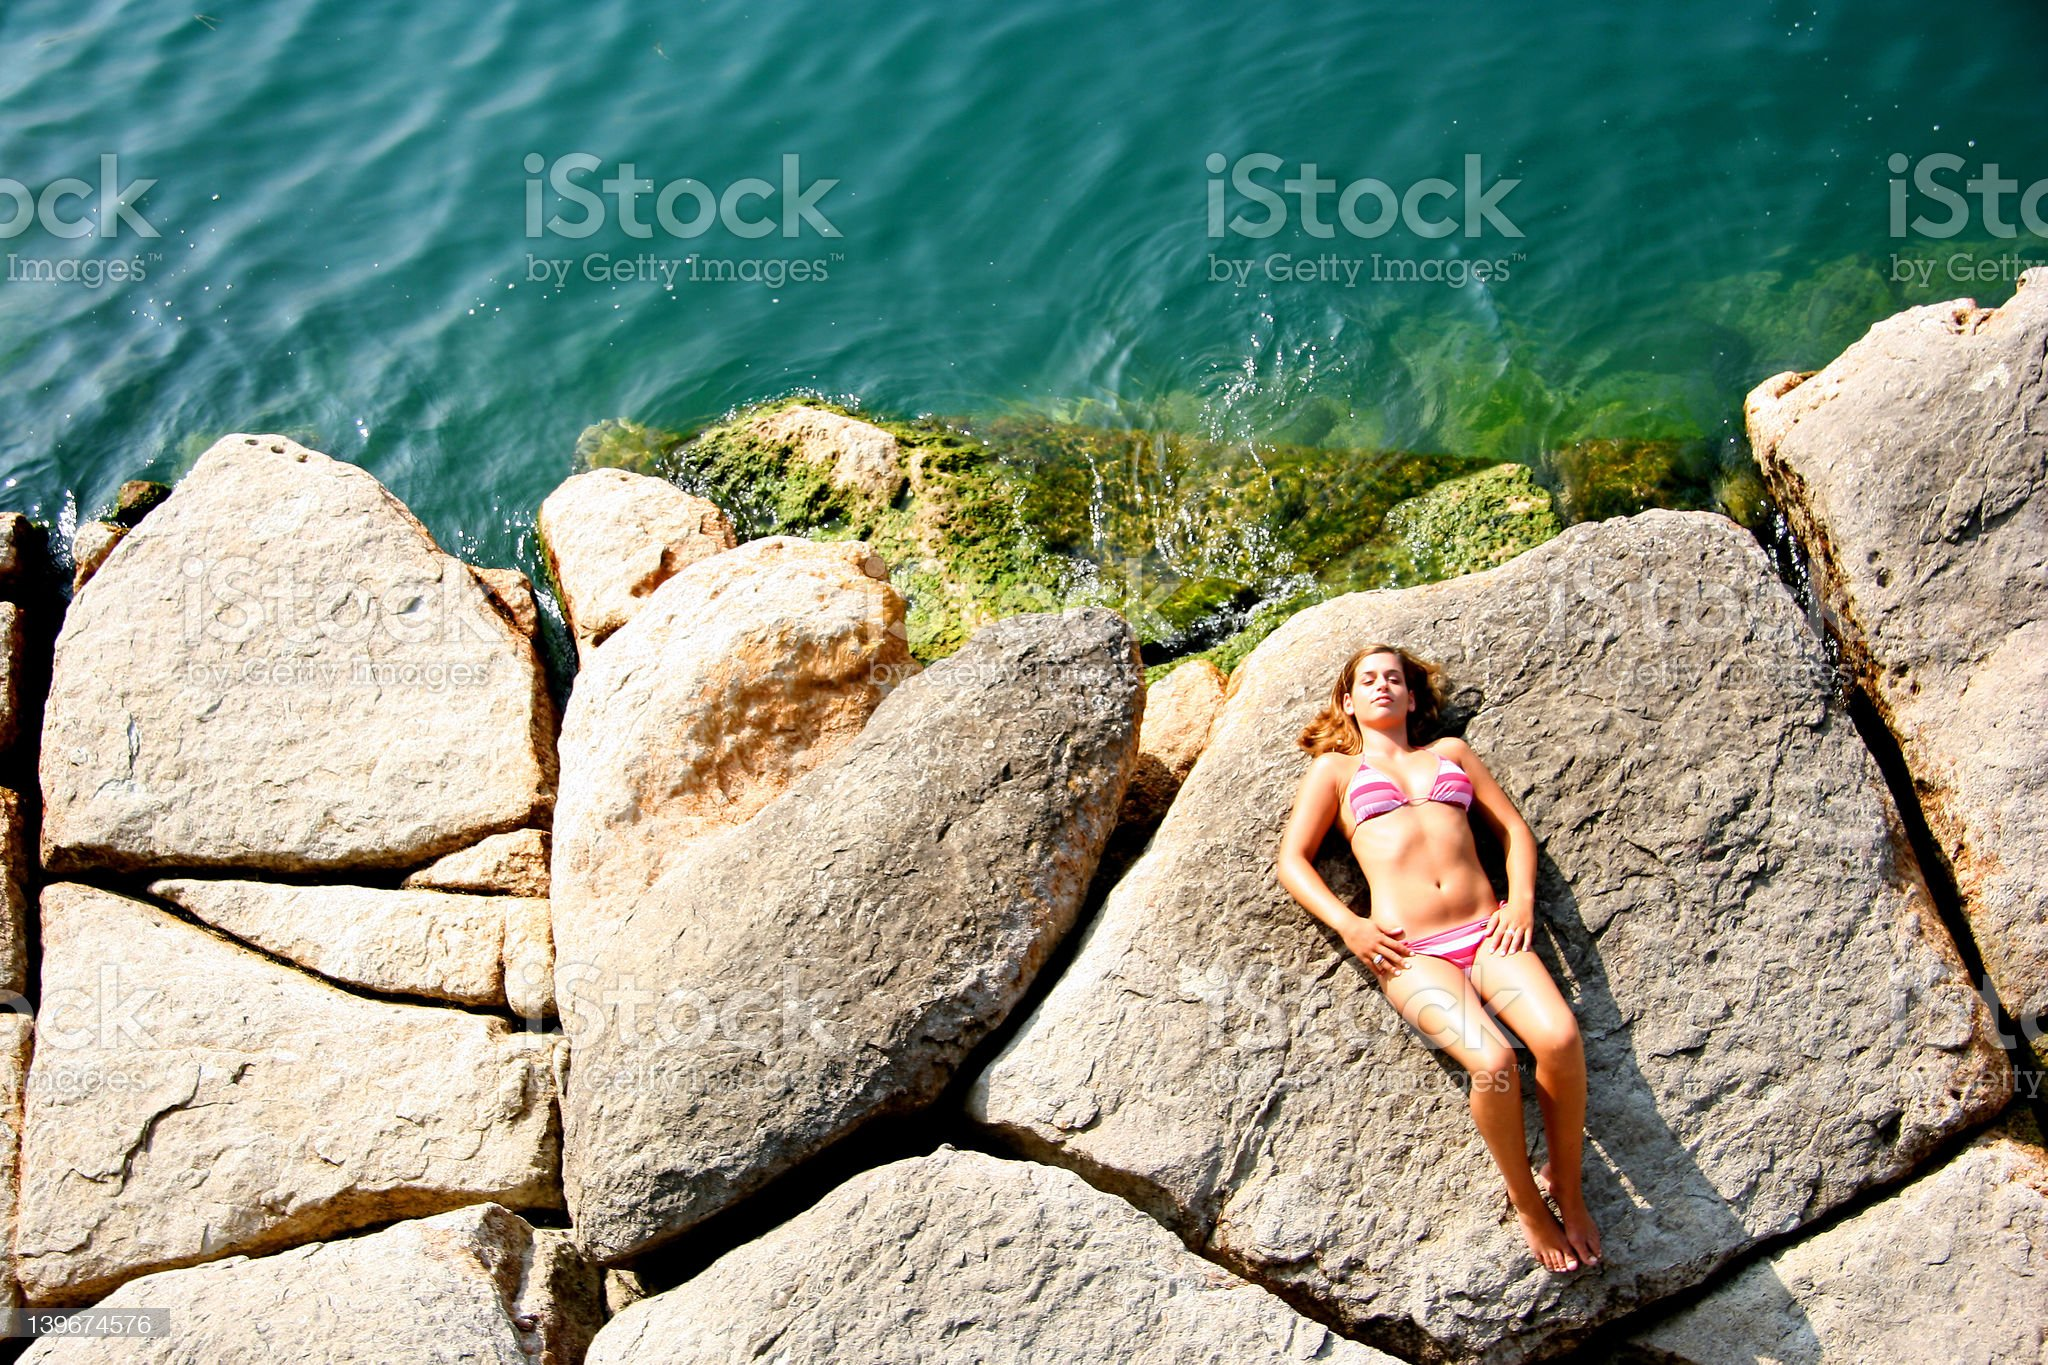 Relaxed on a lake shore royalty-free stock photo